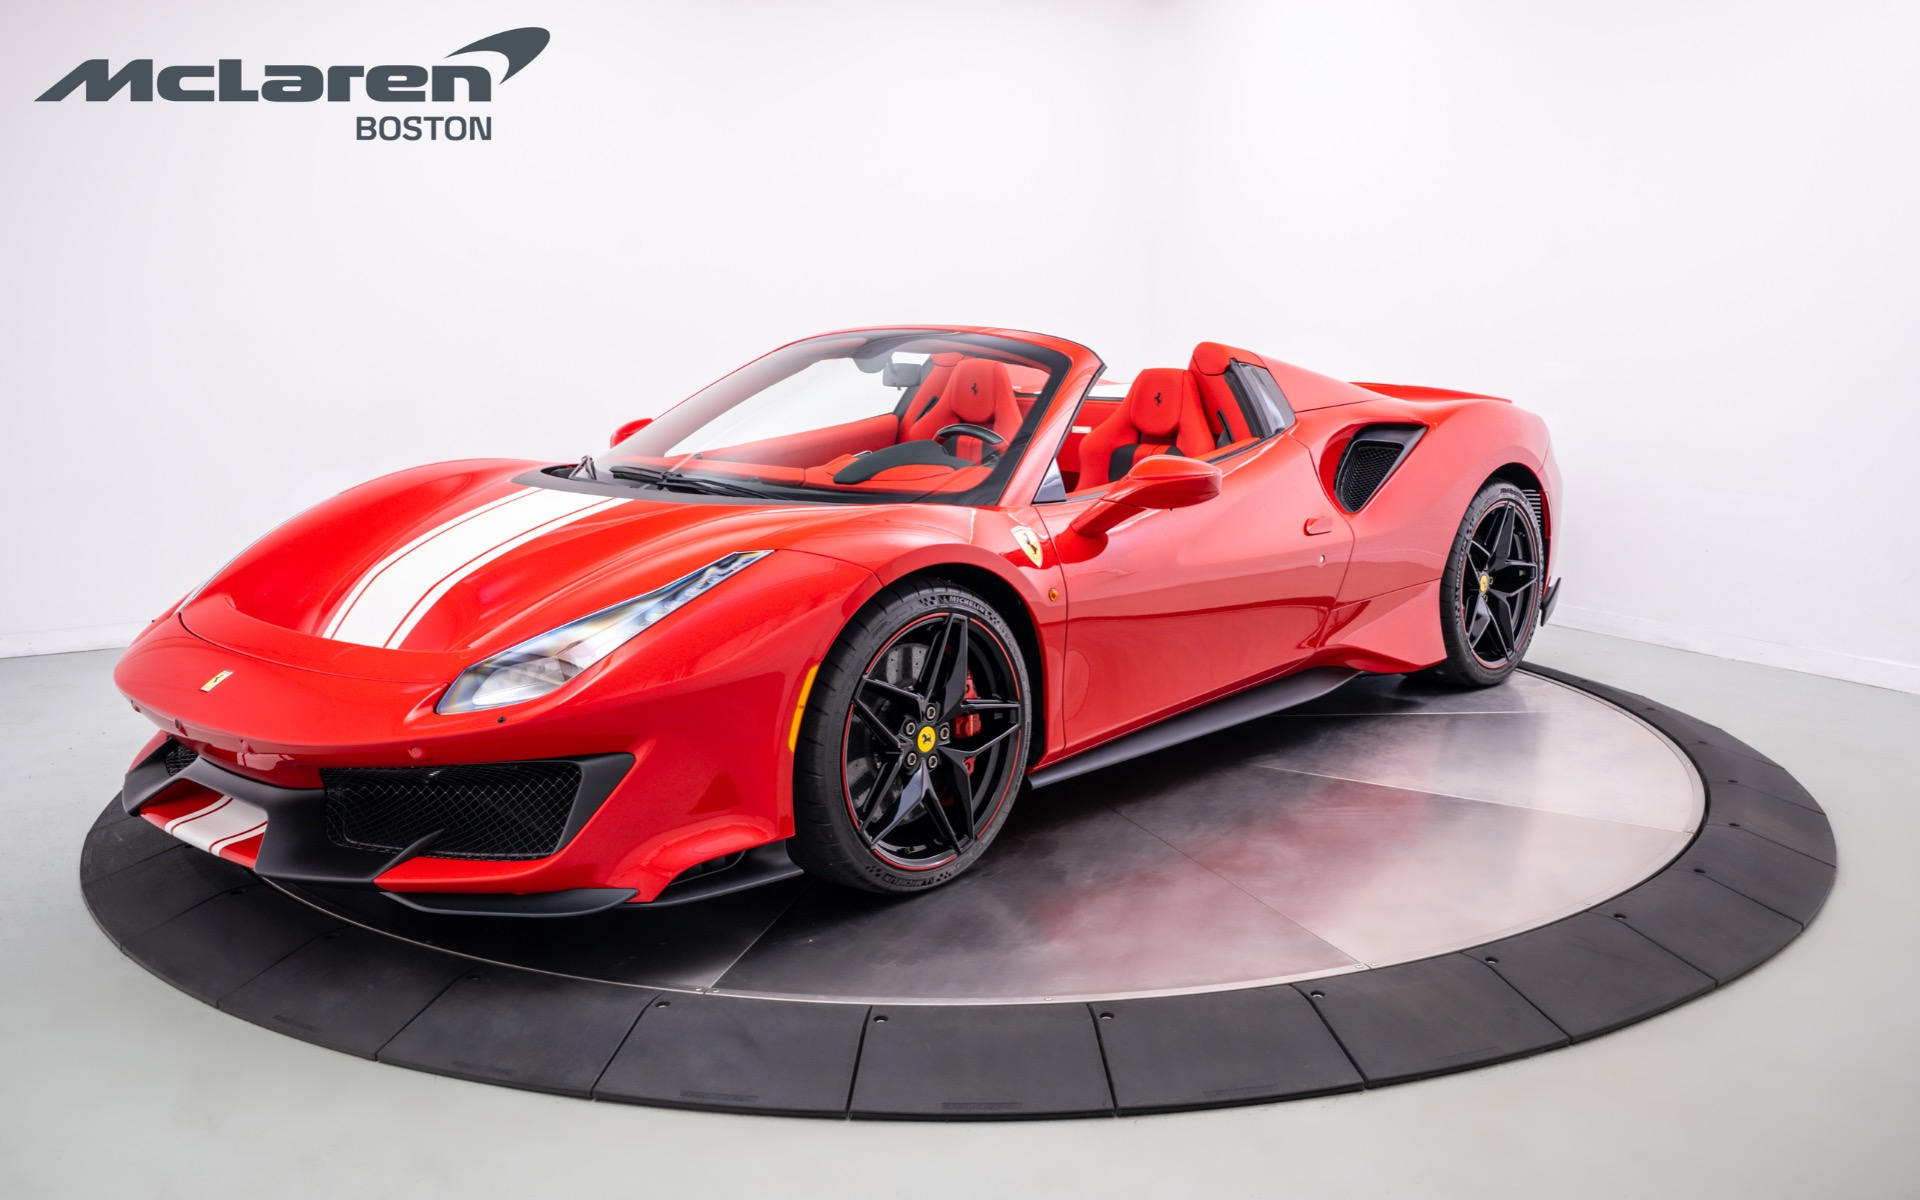 2019 Ferrari 488 Pista Spider For Sale In Norwell Ma 46401f Mclaren Boston